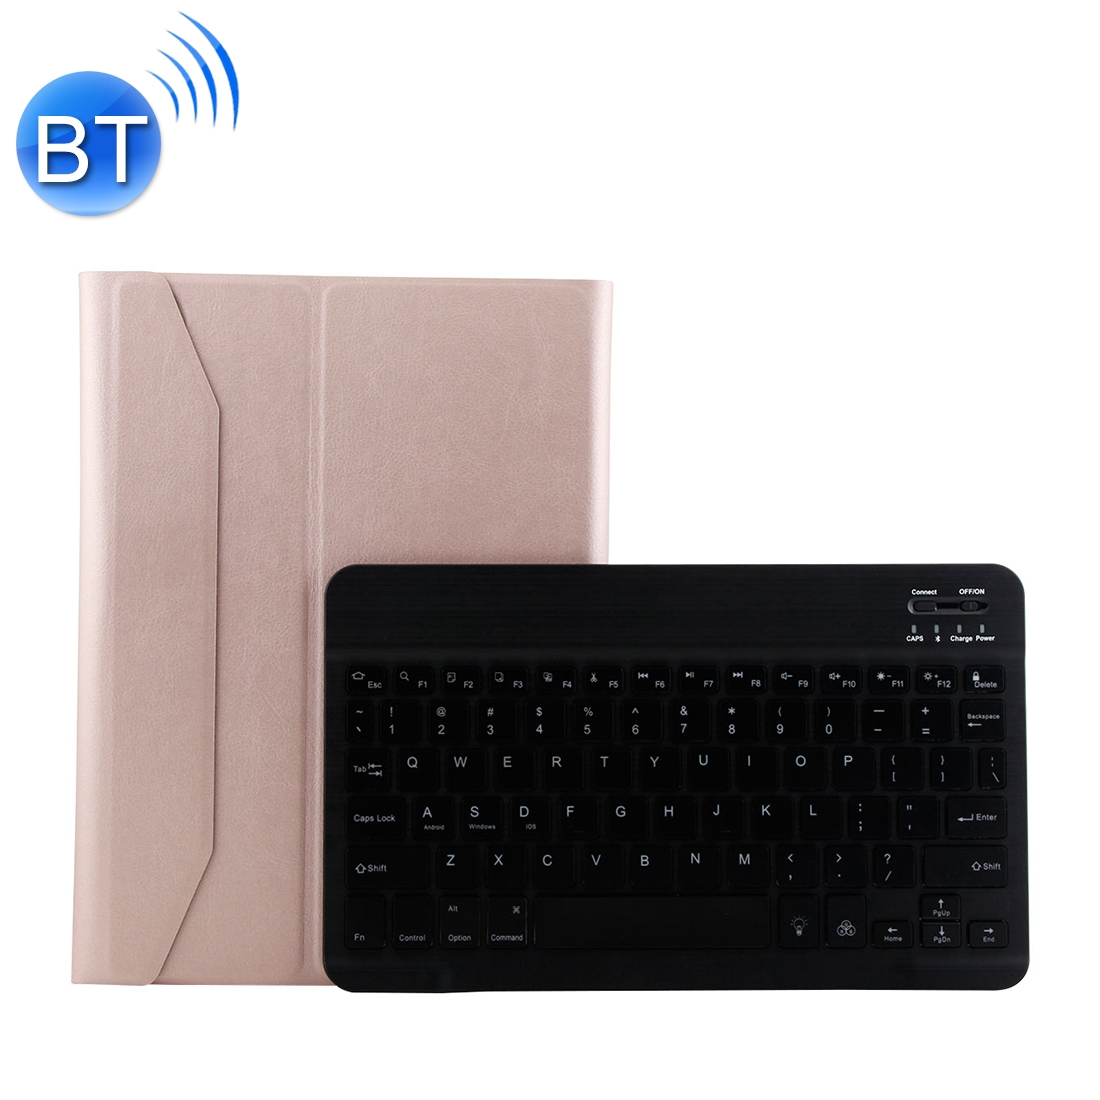 iPad Air 2 Case With Keyboard With Leather Case For iPad Air/Air 2/Pro 9.7 inch  (Pink)